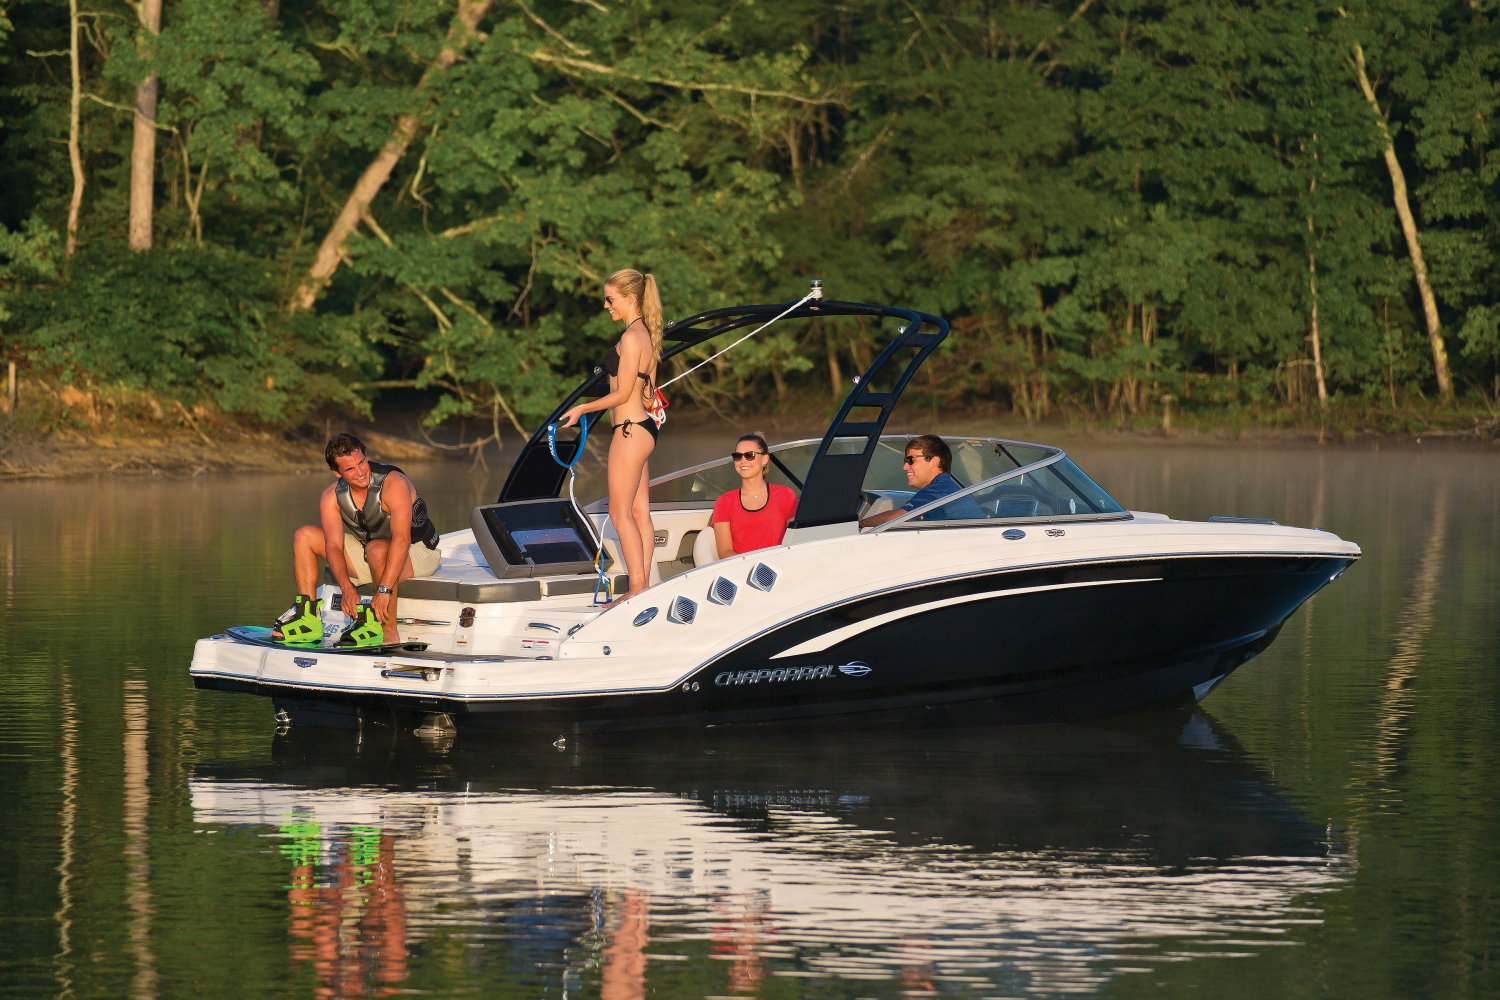 2017 Chaparral 246 Ssi Seattle Watersports